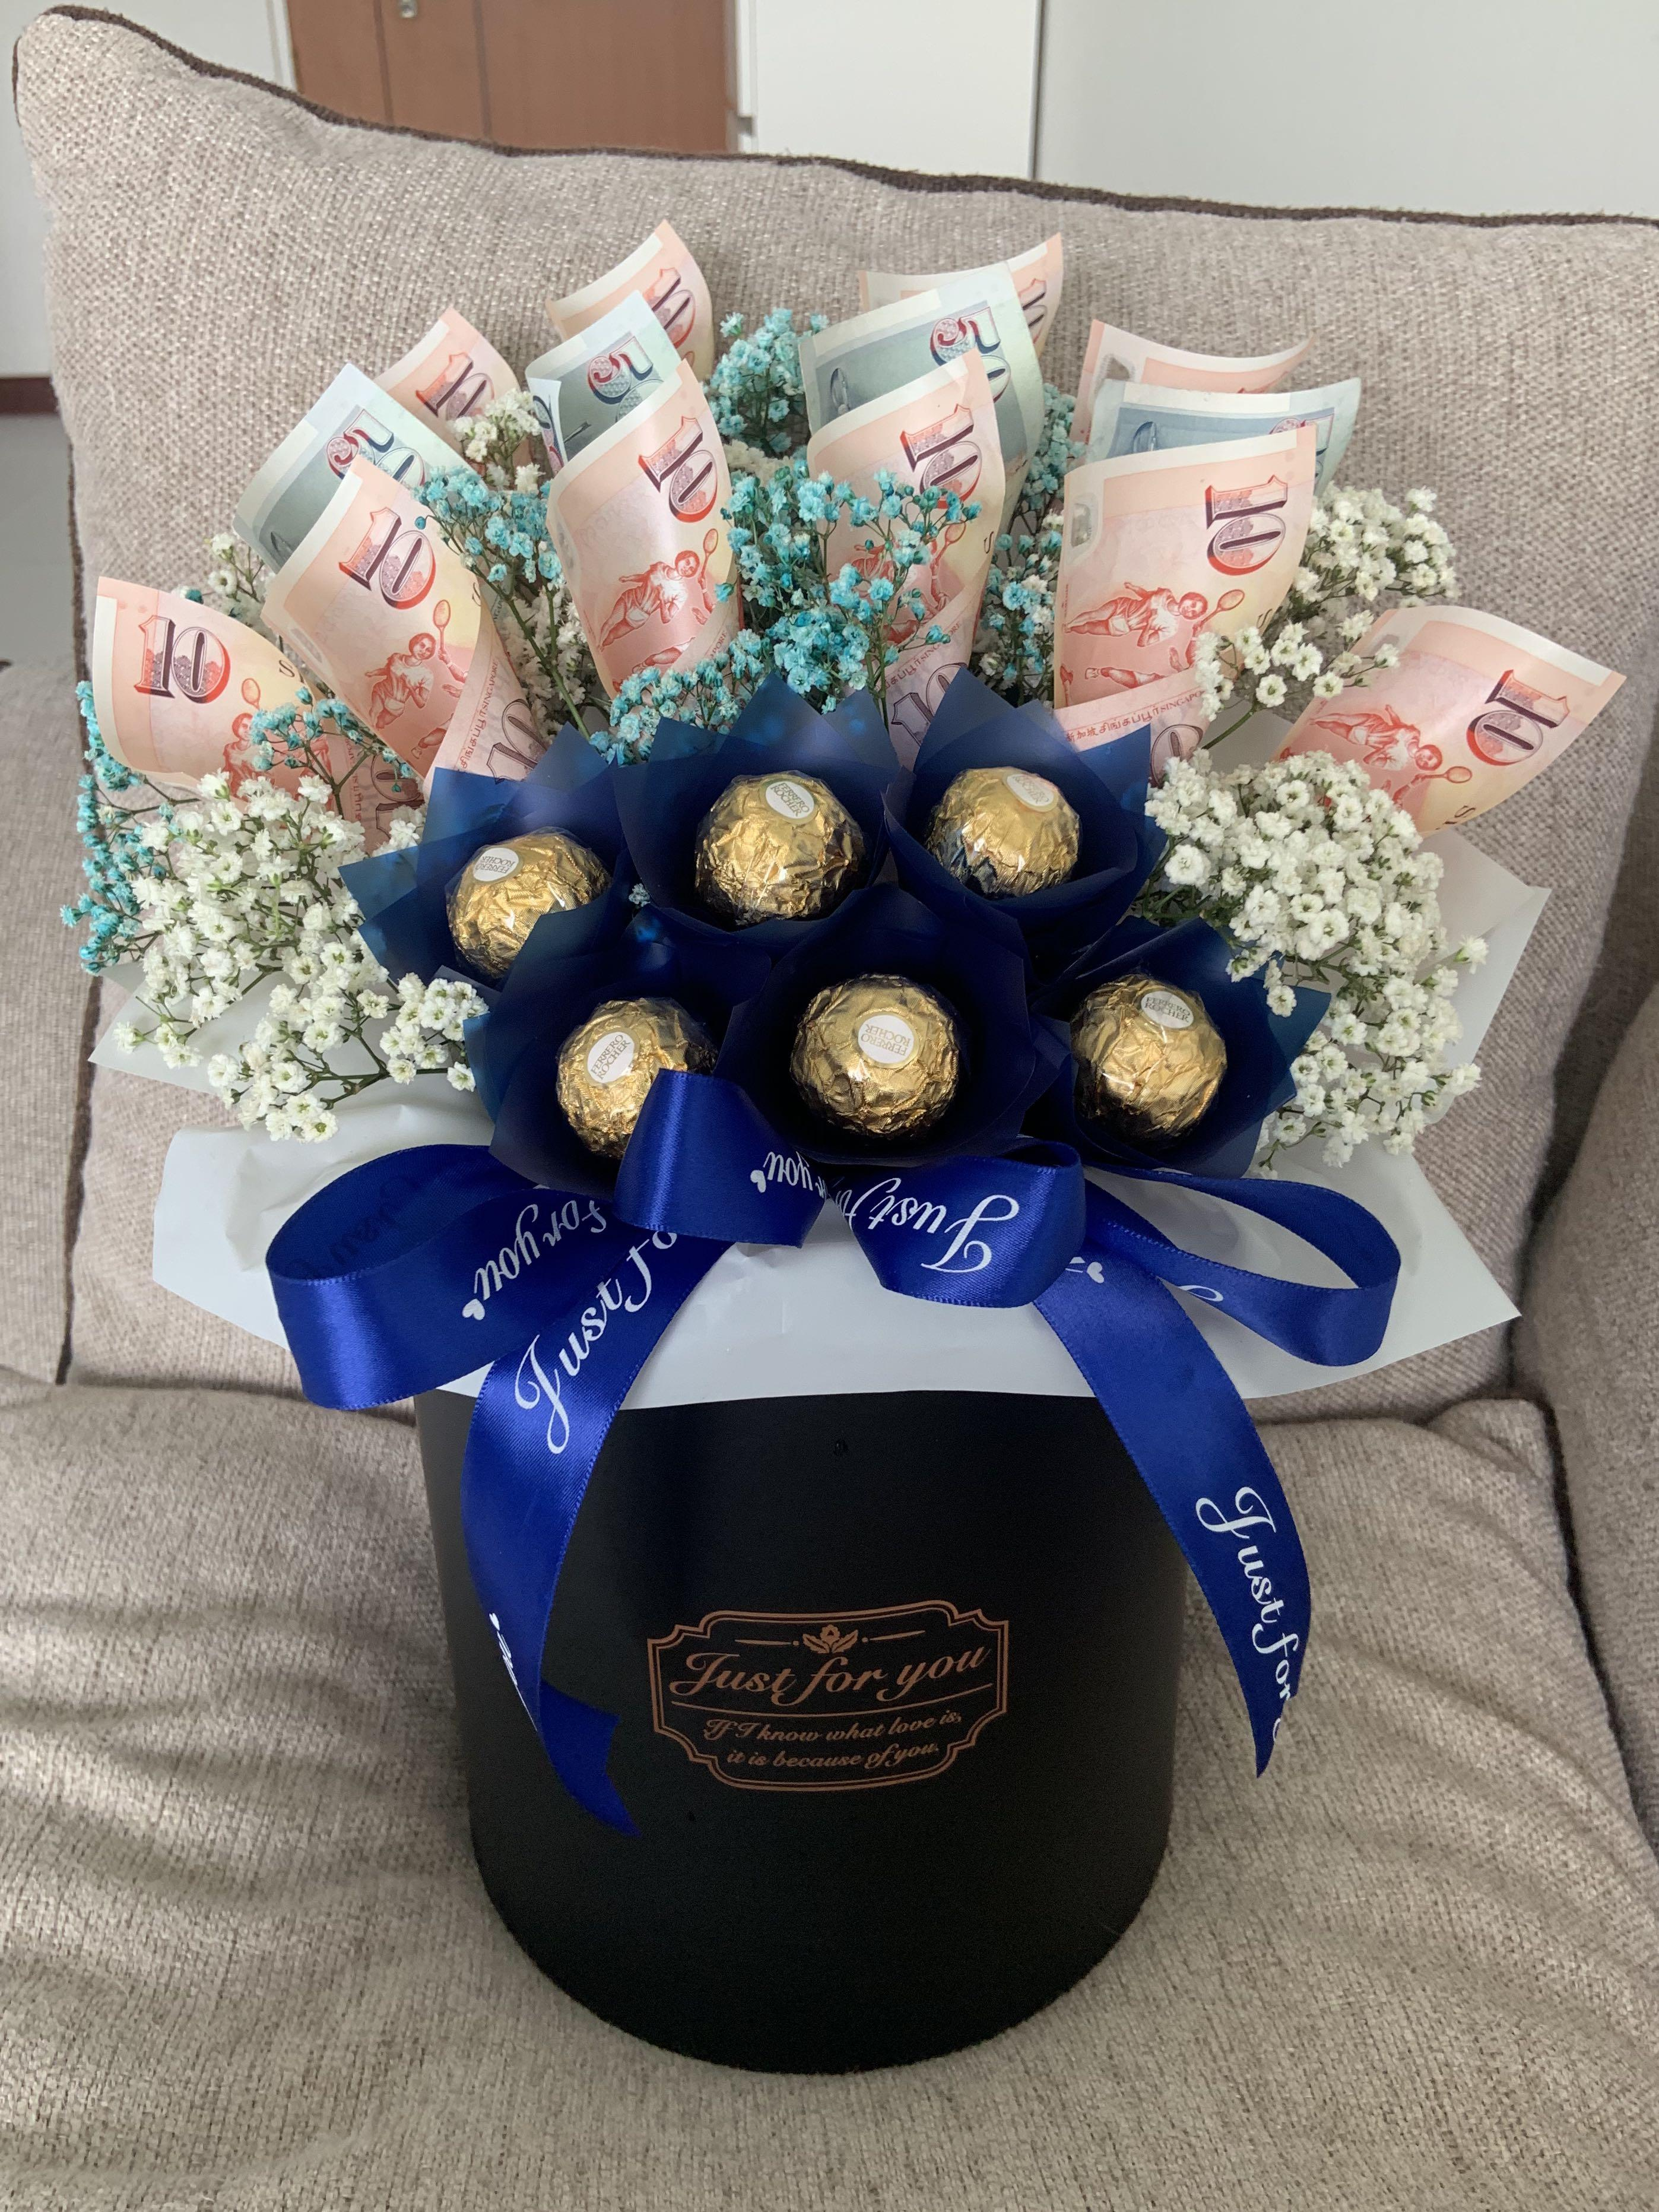 Basket Money Chocolate Bouquet Gardening Flowers Bouquets On Carousell